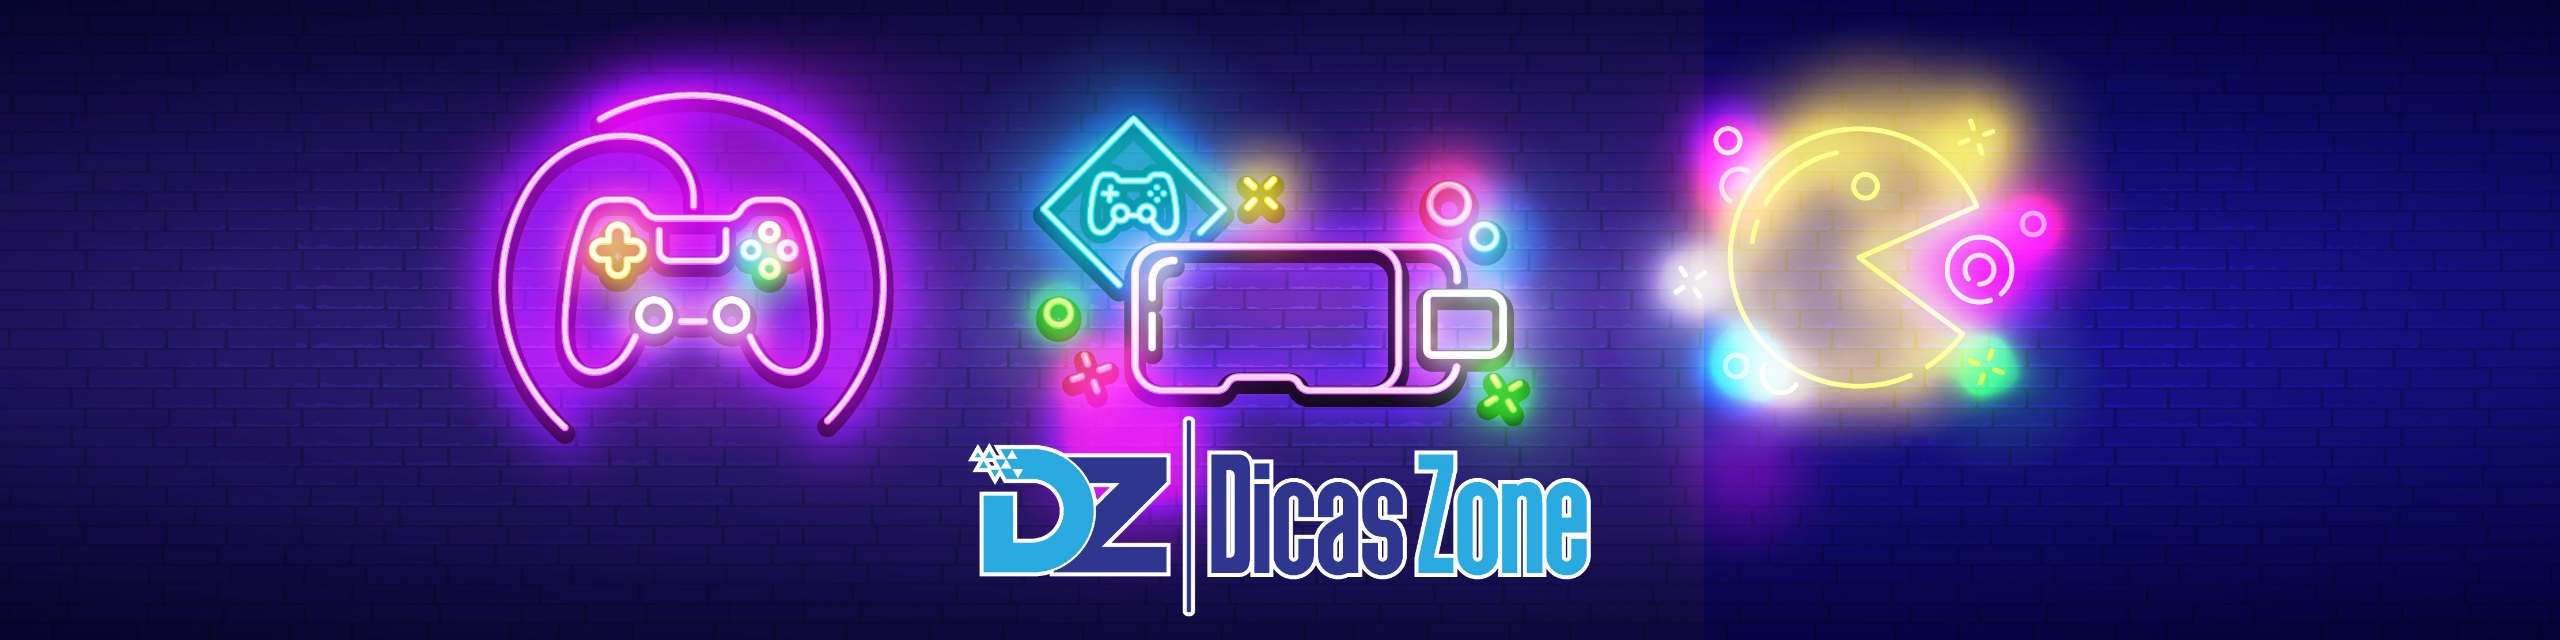 Dicas Zone (@dicaszone) Cover Image